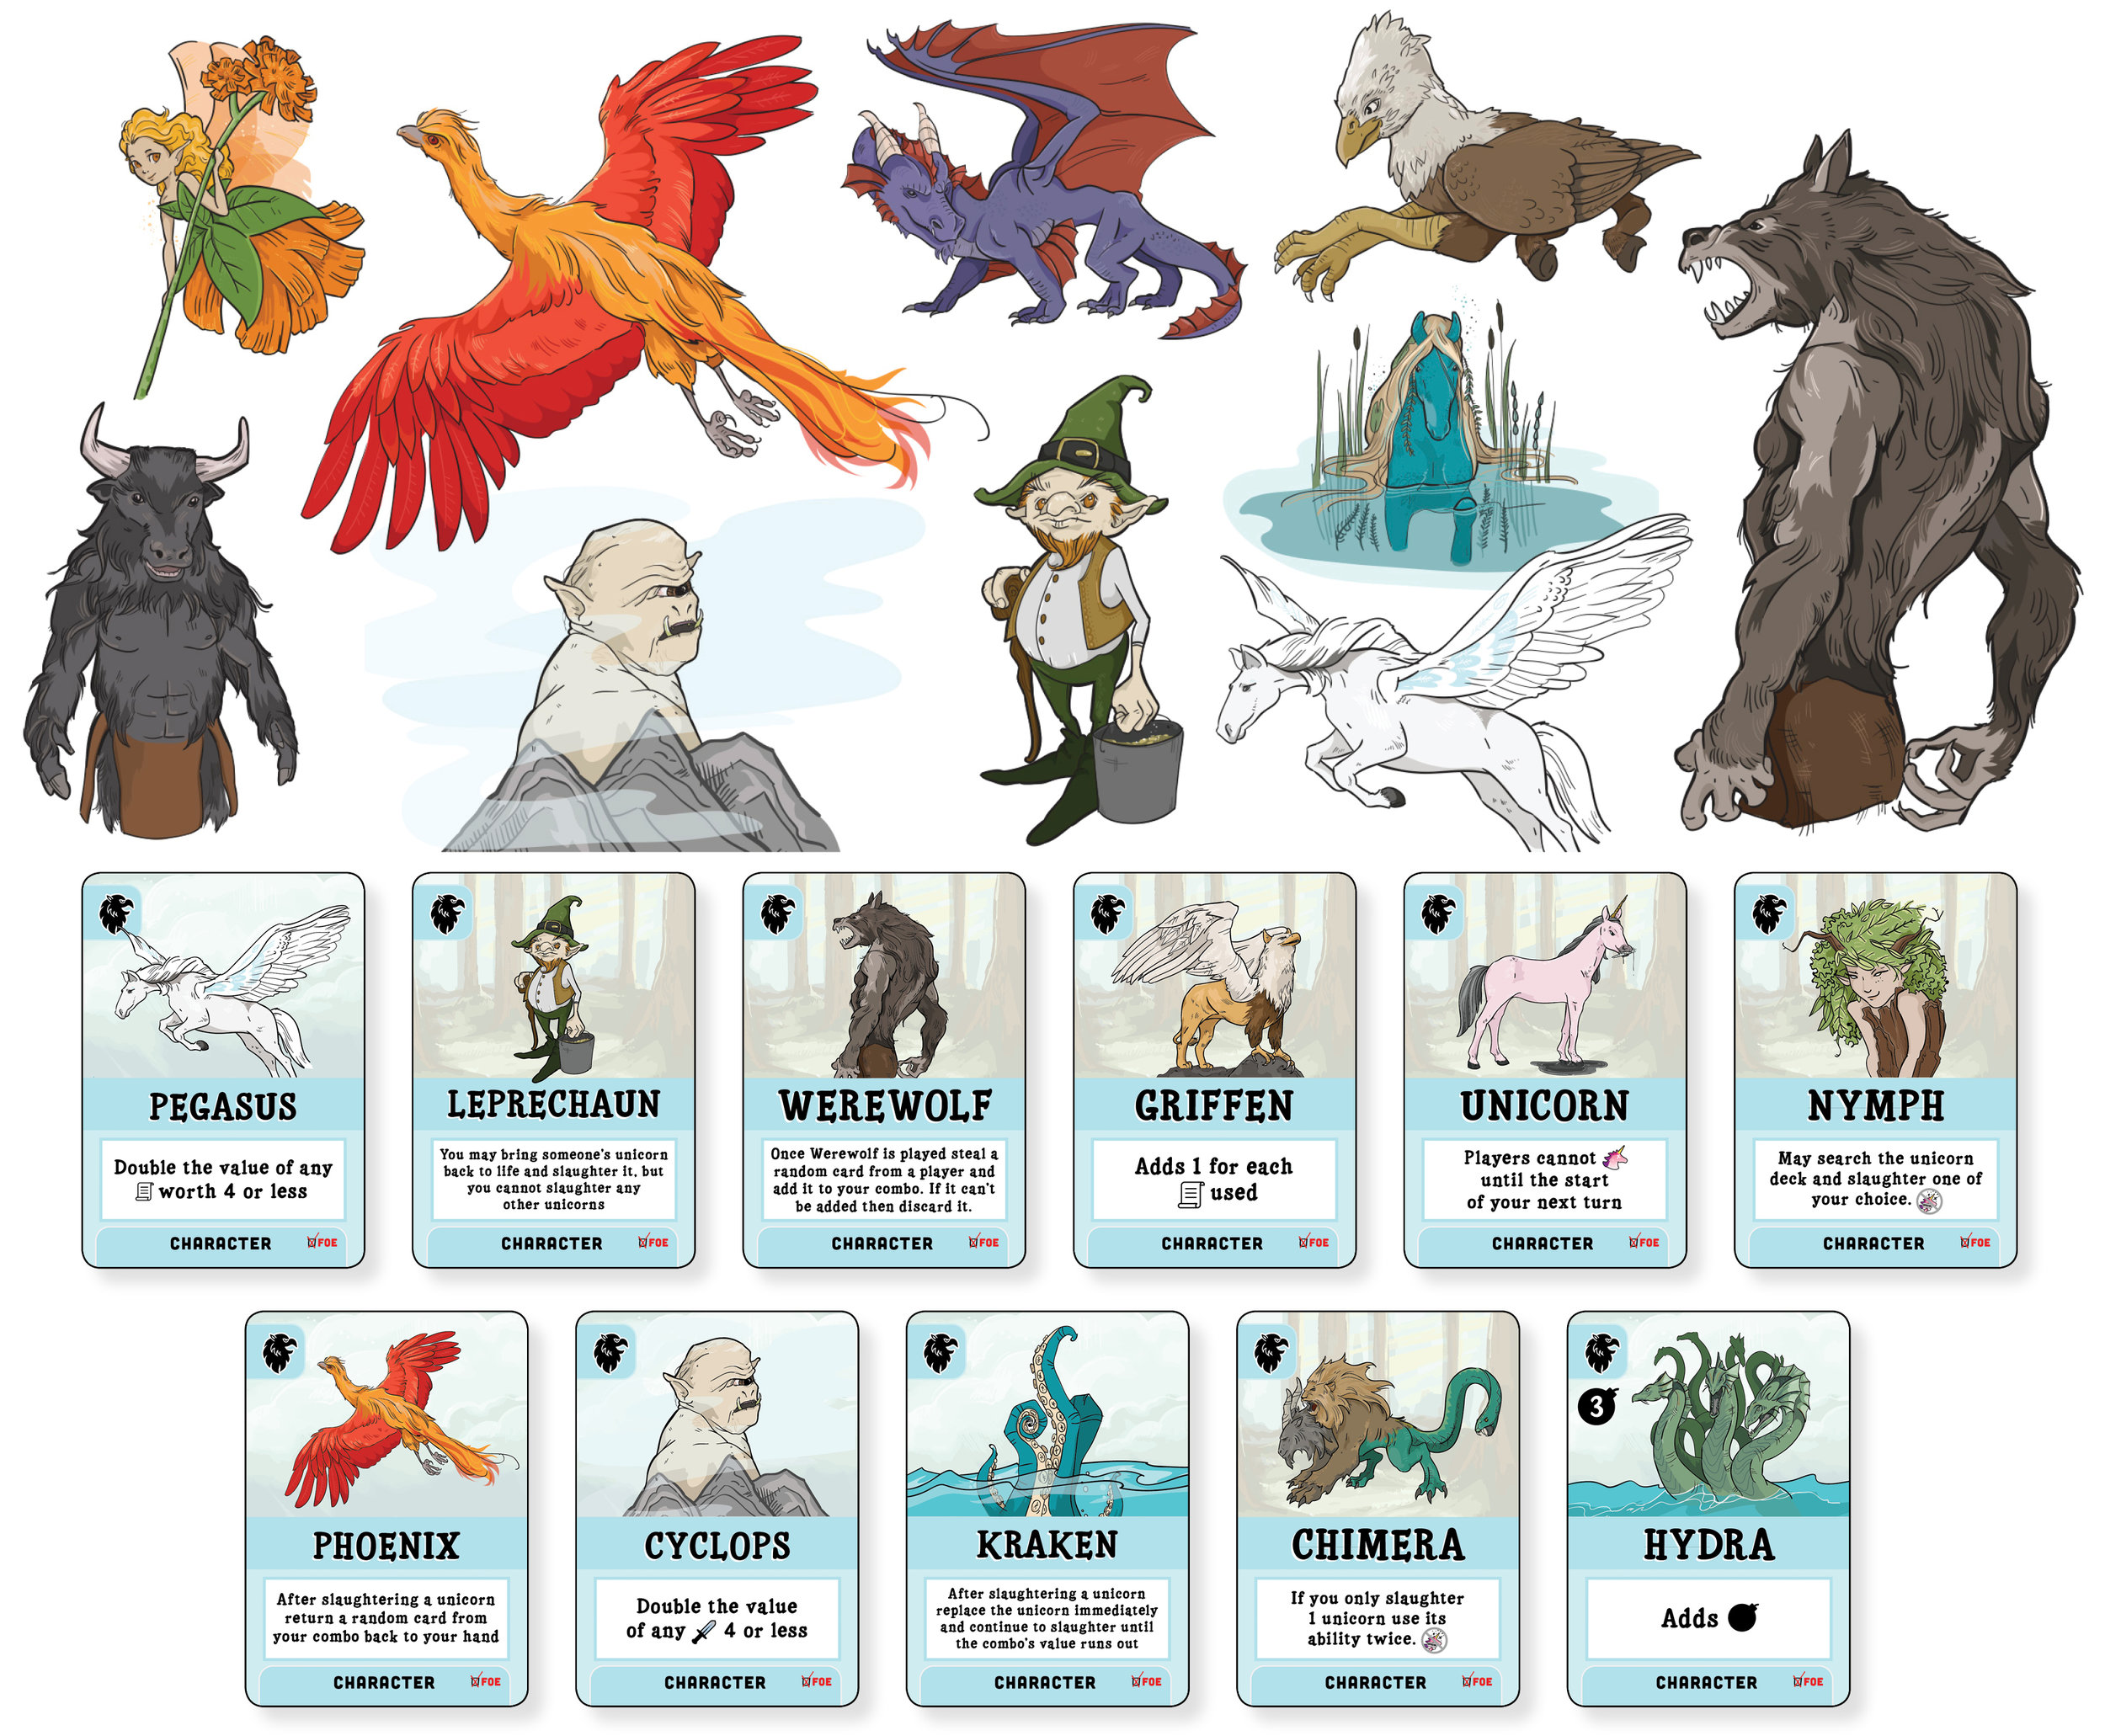 Final artwork for Unicorns Friend or Foe: Foe Edition included 24 different mythical characters.